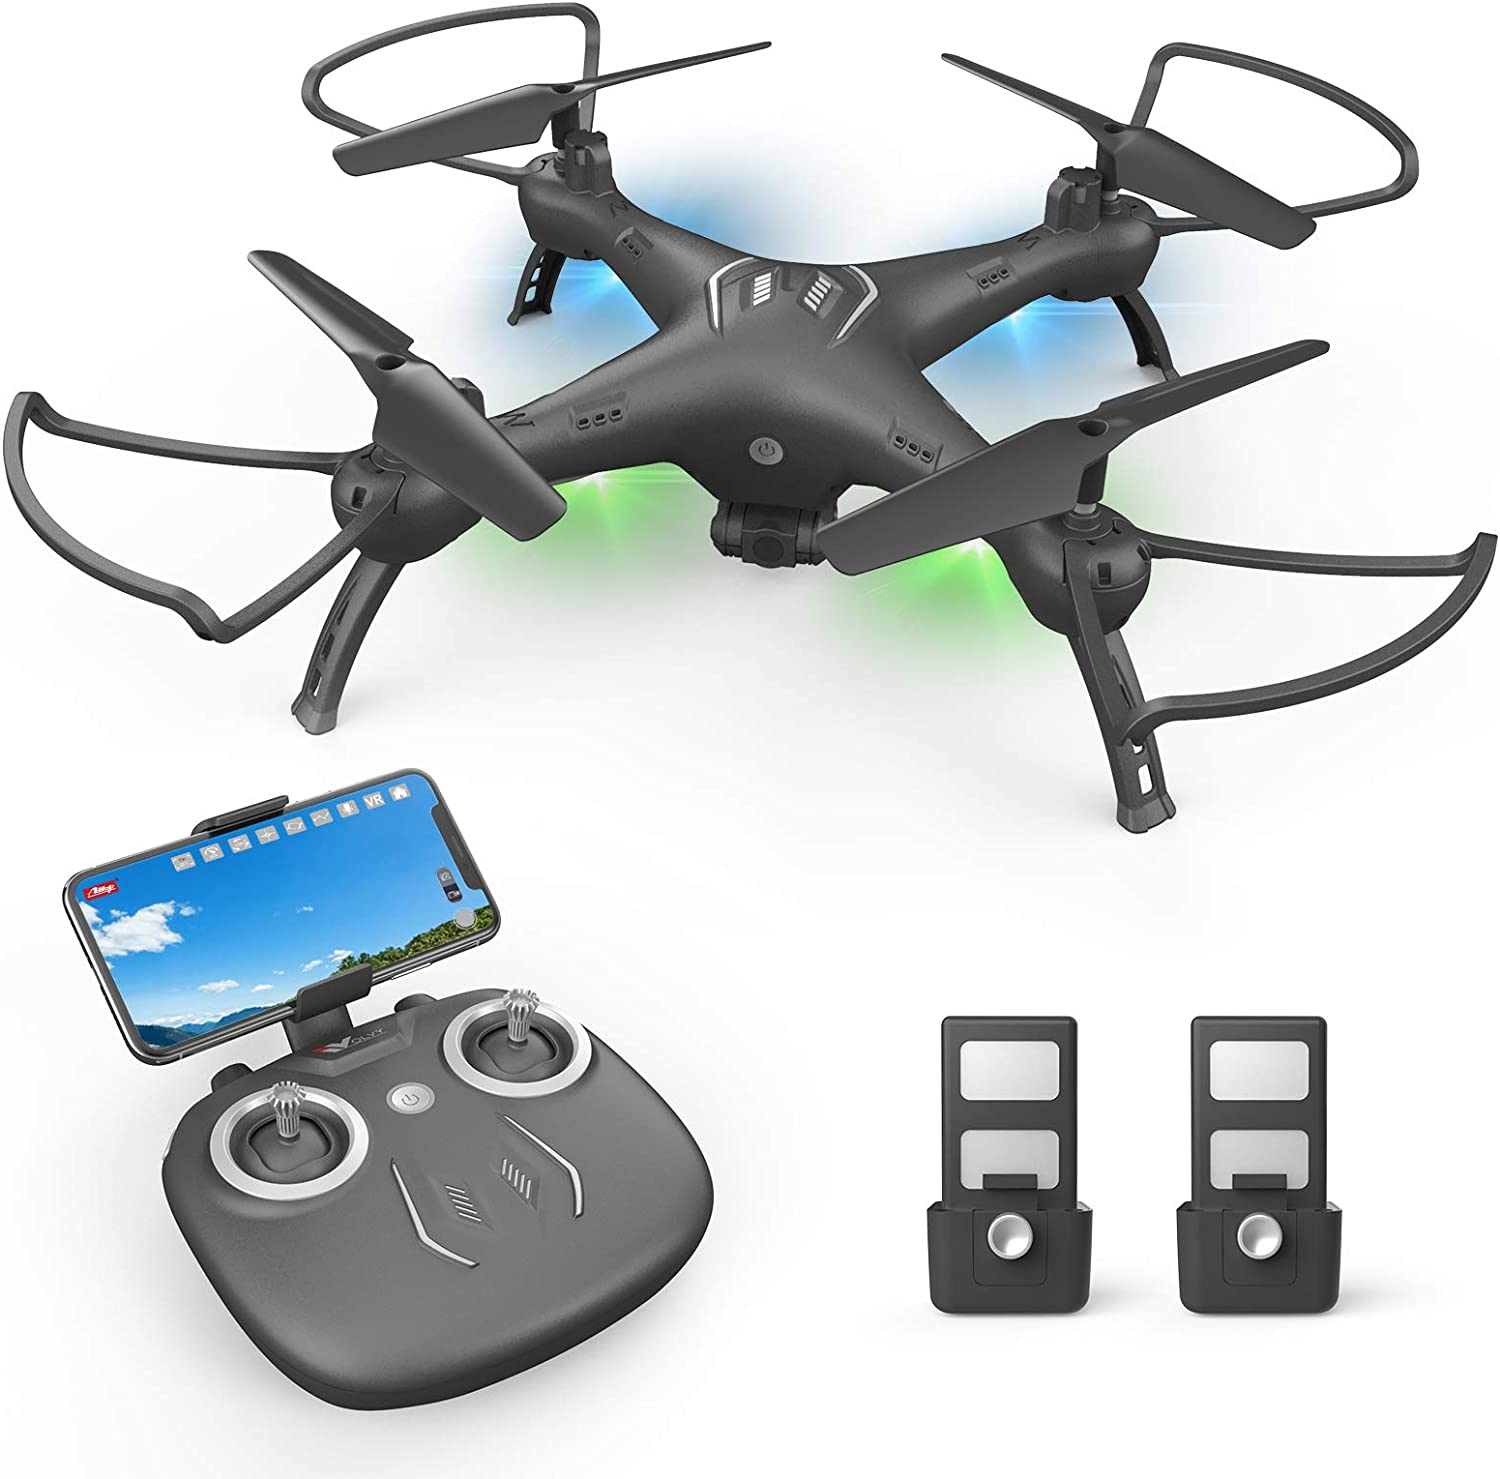 ATTOP Drone with Camera 1080P HD, Toss to Launch RC Drone for Kids/Adults with Smart APP Trajectory Flight Altitude Hold One Key Take Off/Landing Headless 360°Flip Camera Drone 2 Batteries